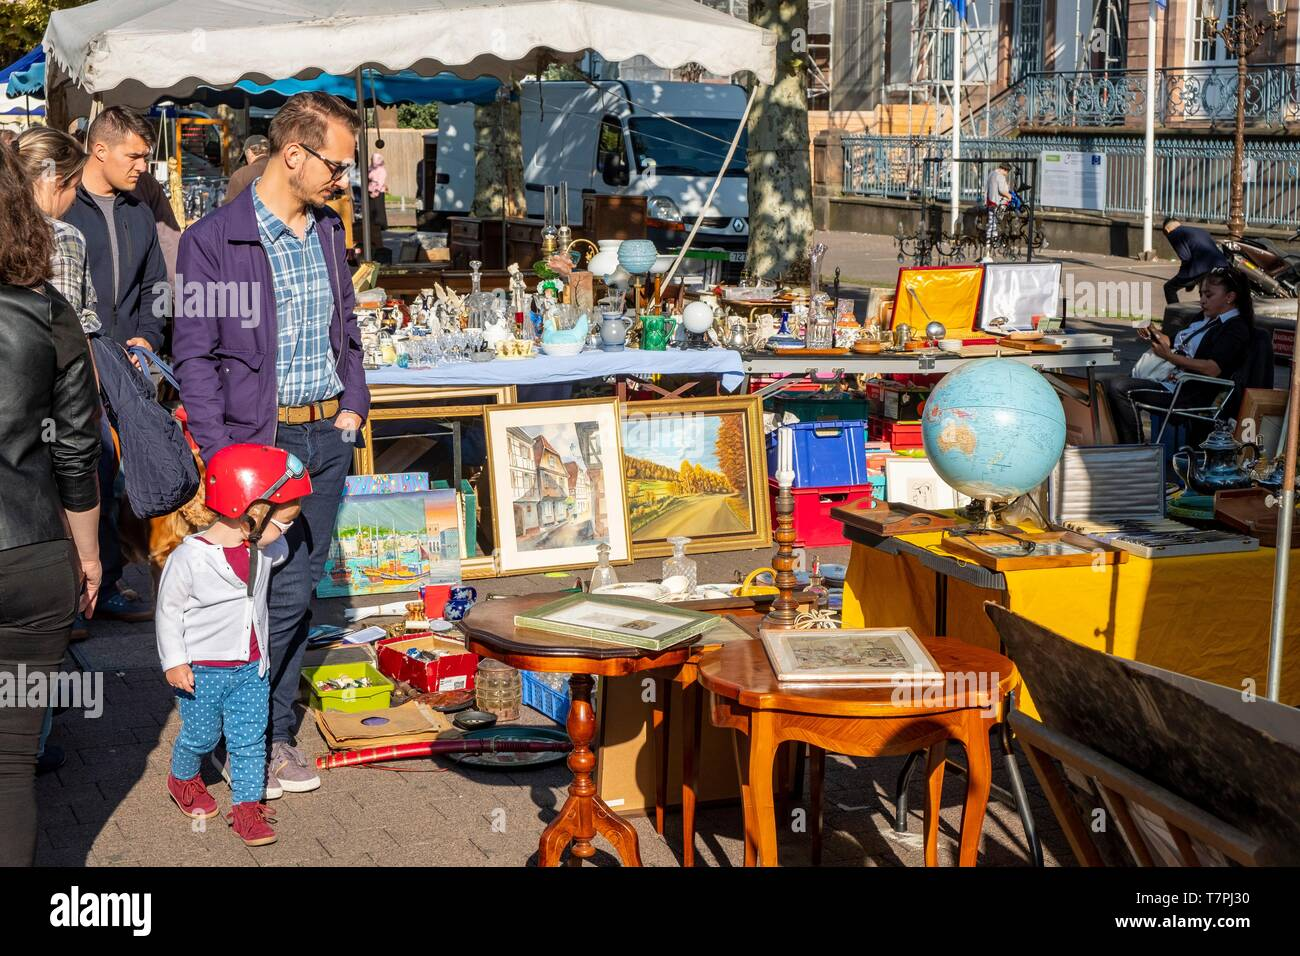 France, Bas Rhin, Strasbourg, old city listed as World Heritage by UNESCO, Place Broglie, Brocante - Stock Image